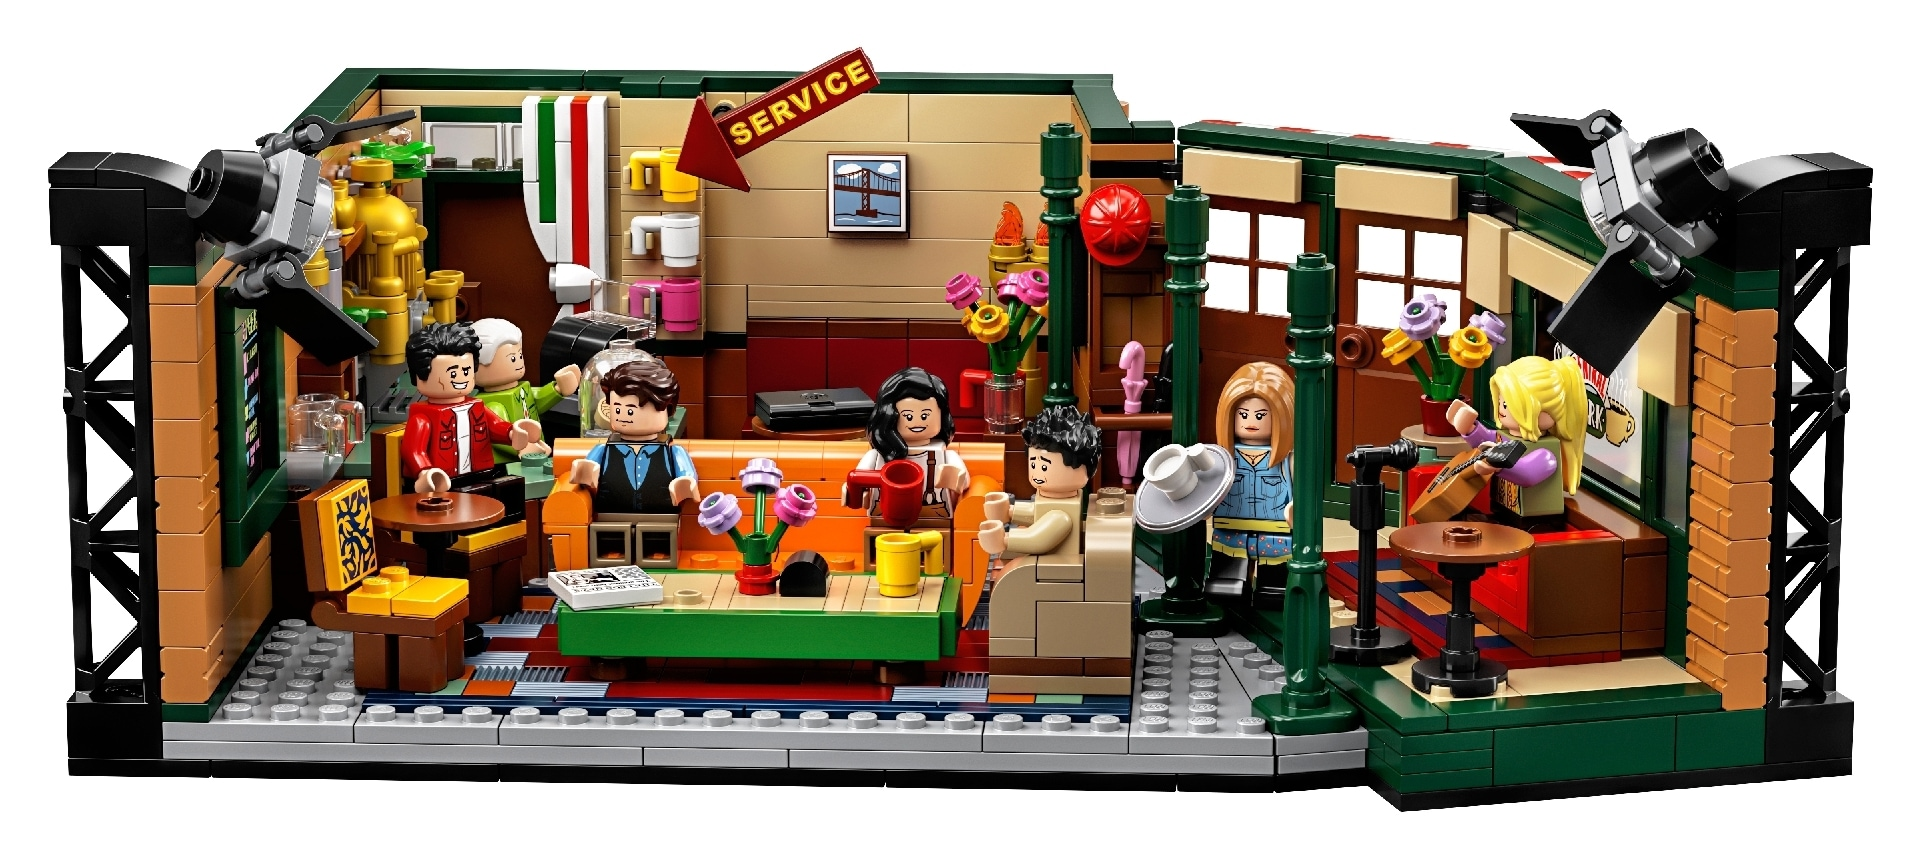 Friends Central Perk Cafe